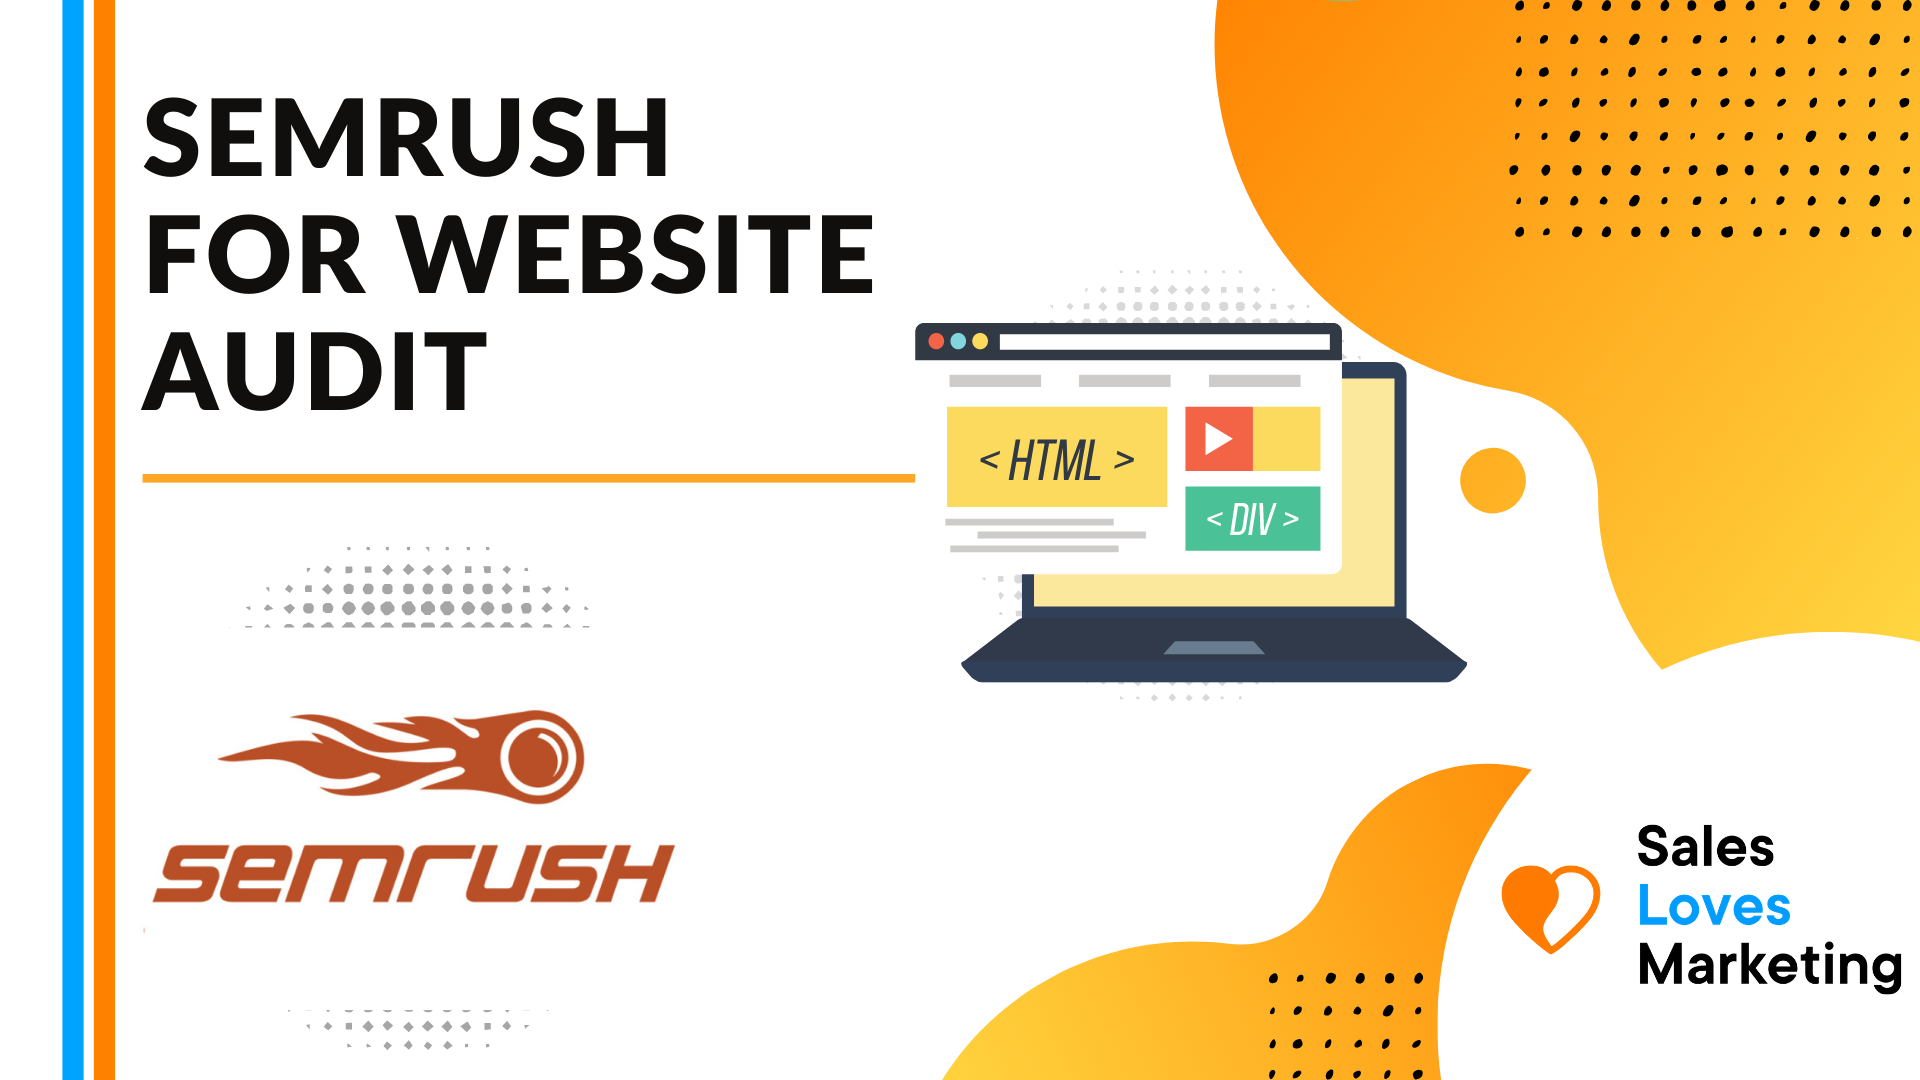 How to Use SEMrush to Perform a SEO Website Audit For Beginners